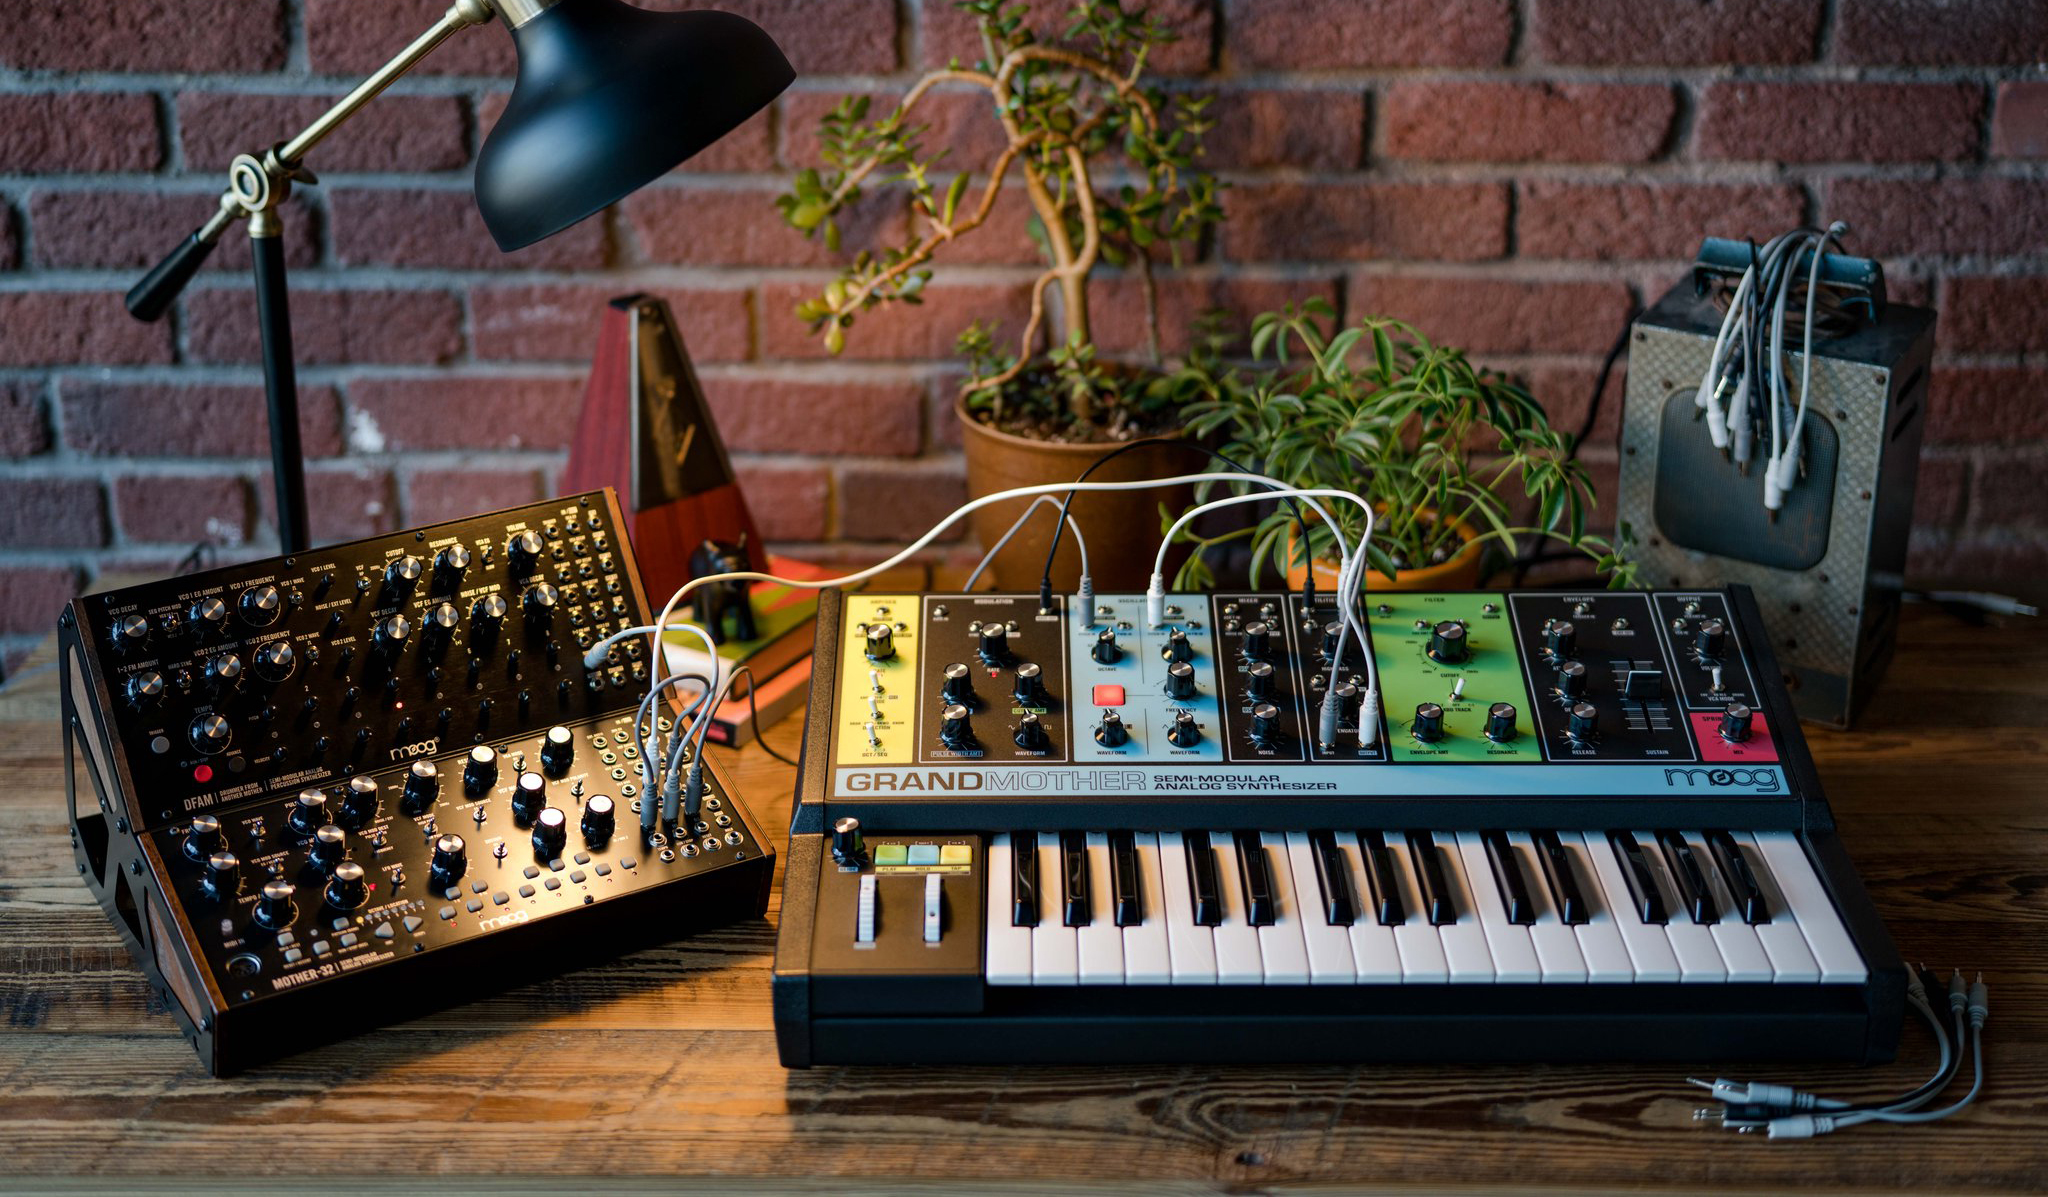 Moog Grandmother – Semimodulär analogsynt med fjäderreverb